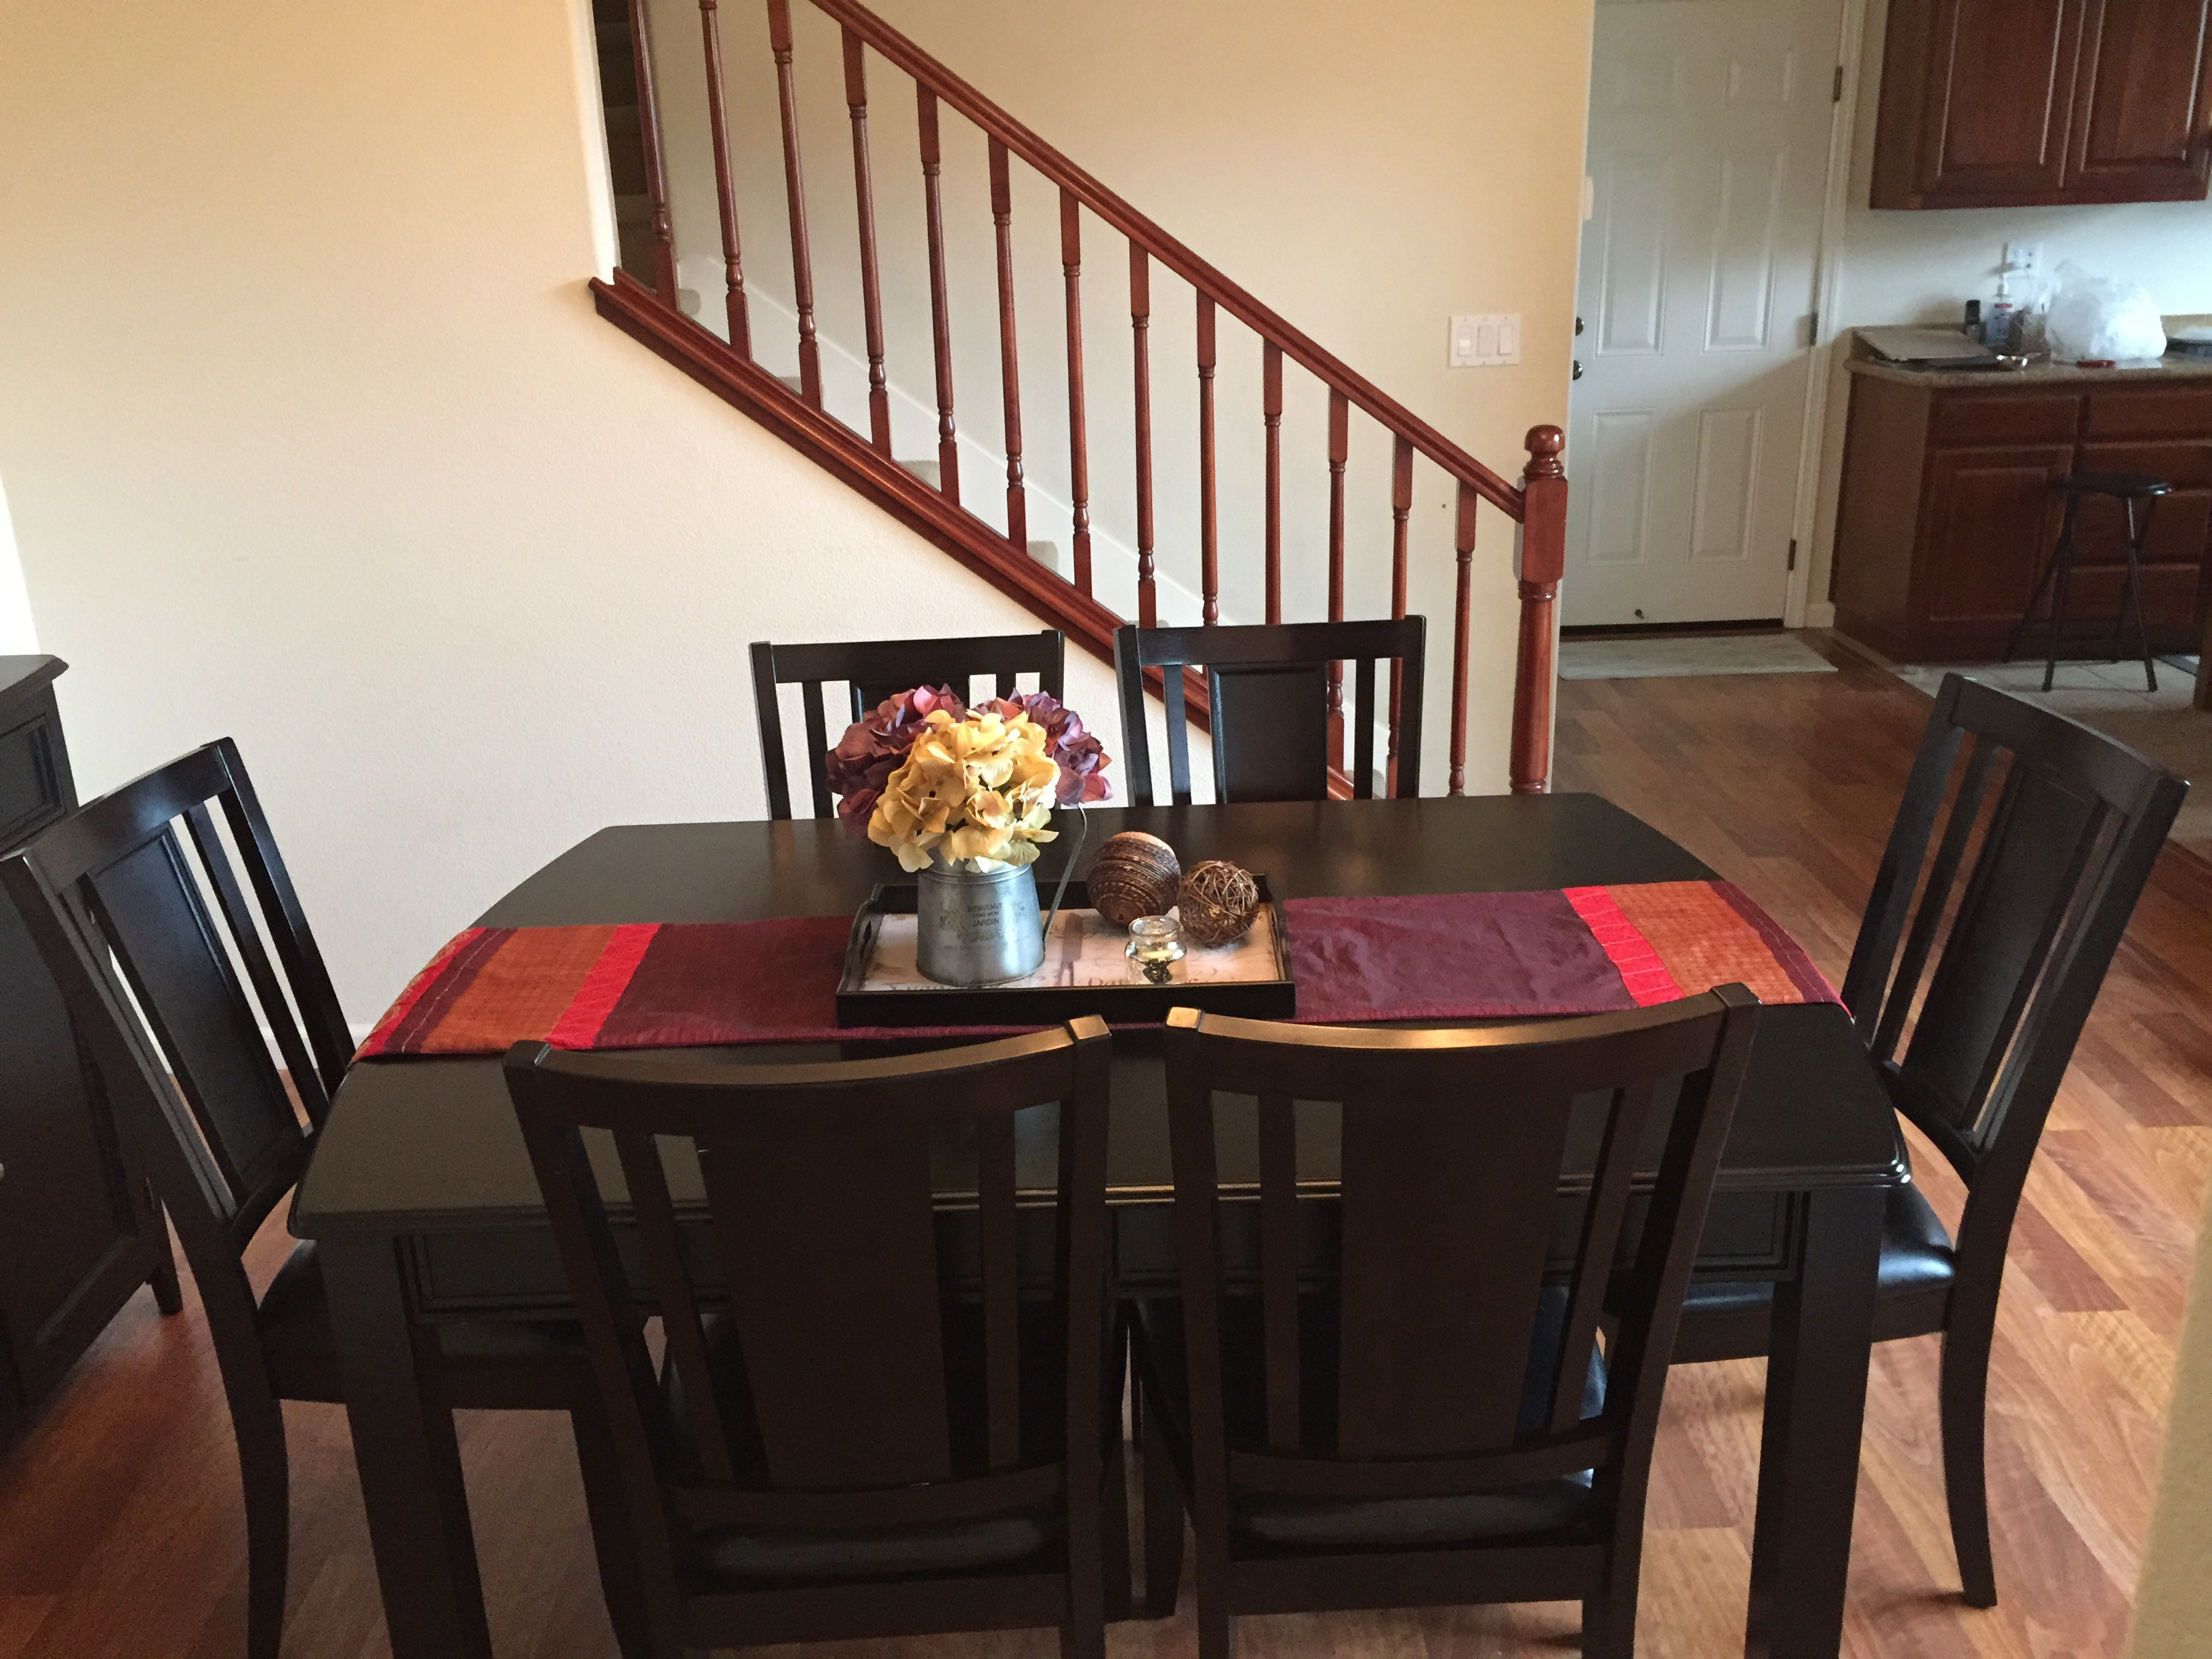 Expandable Dining Table and 6 Chairs for sale – $400